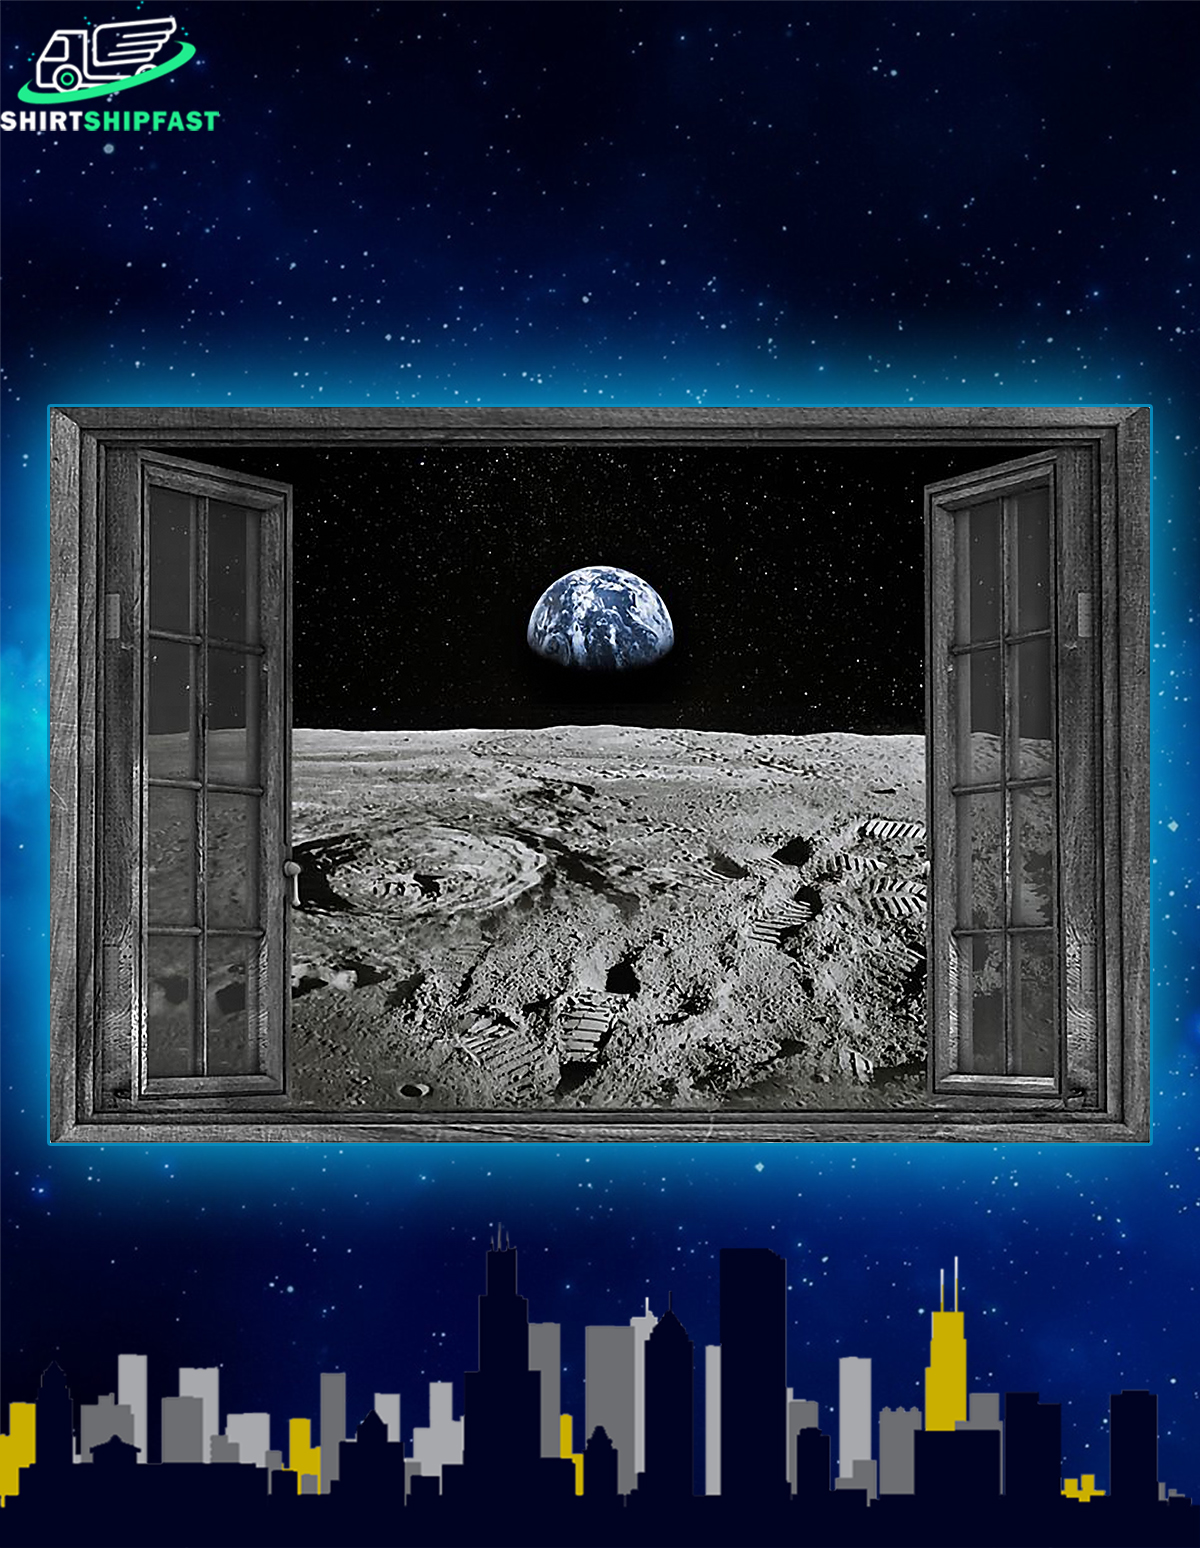 NASA found water on moon poster - Picture 1